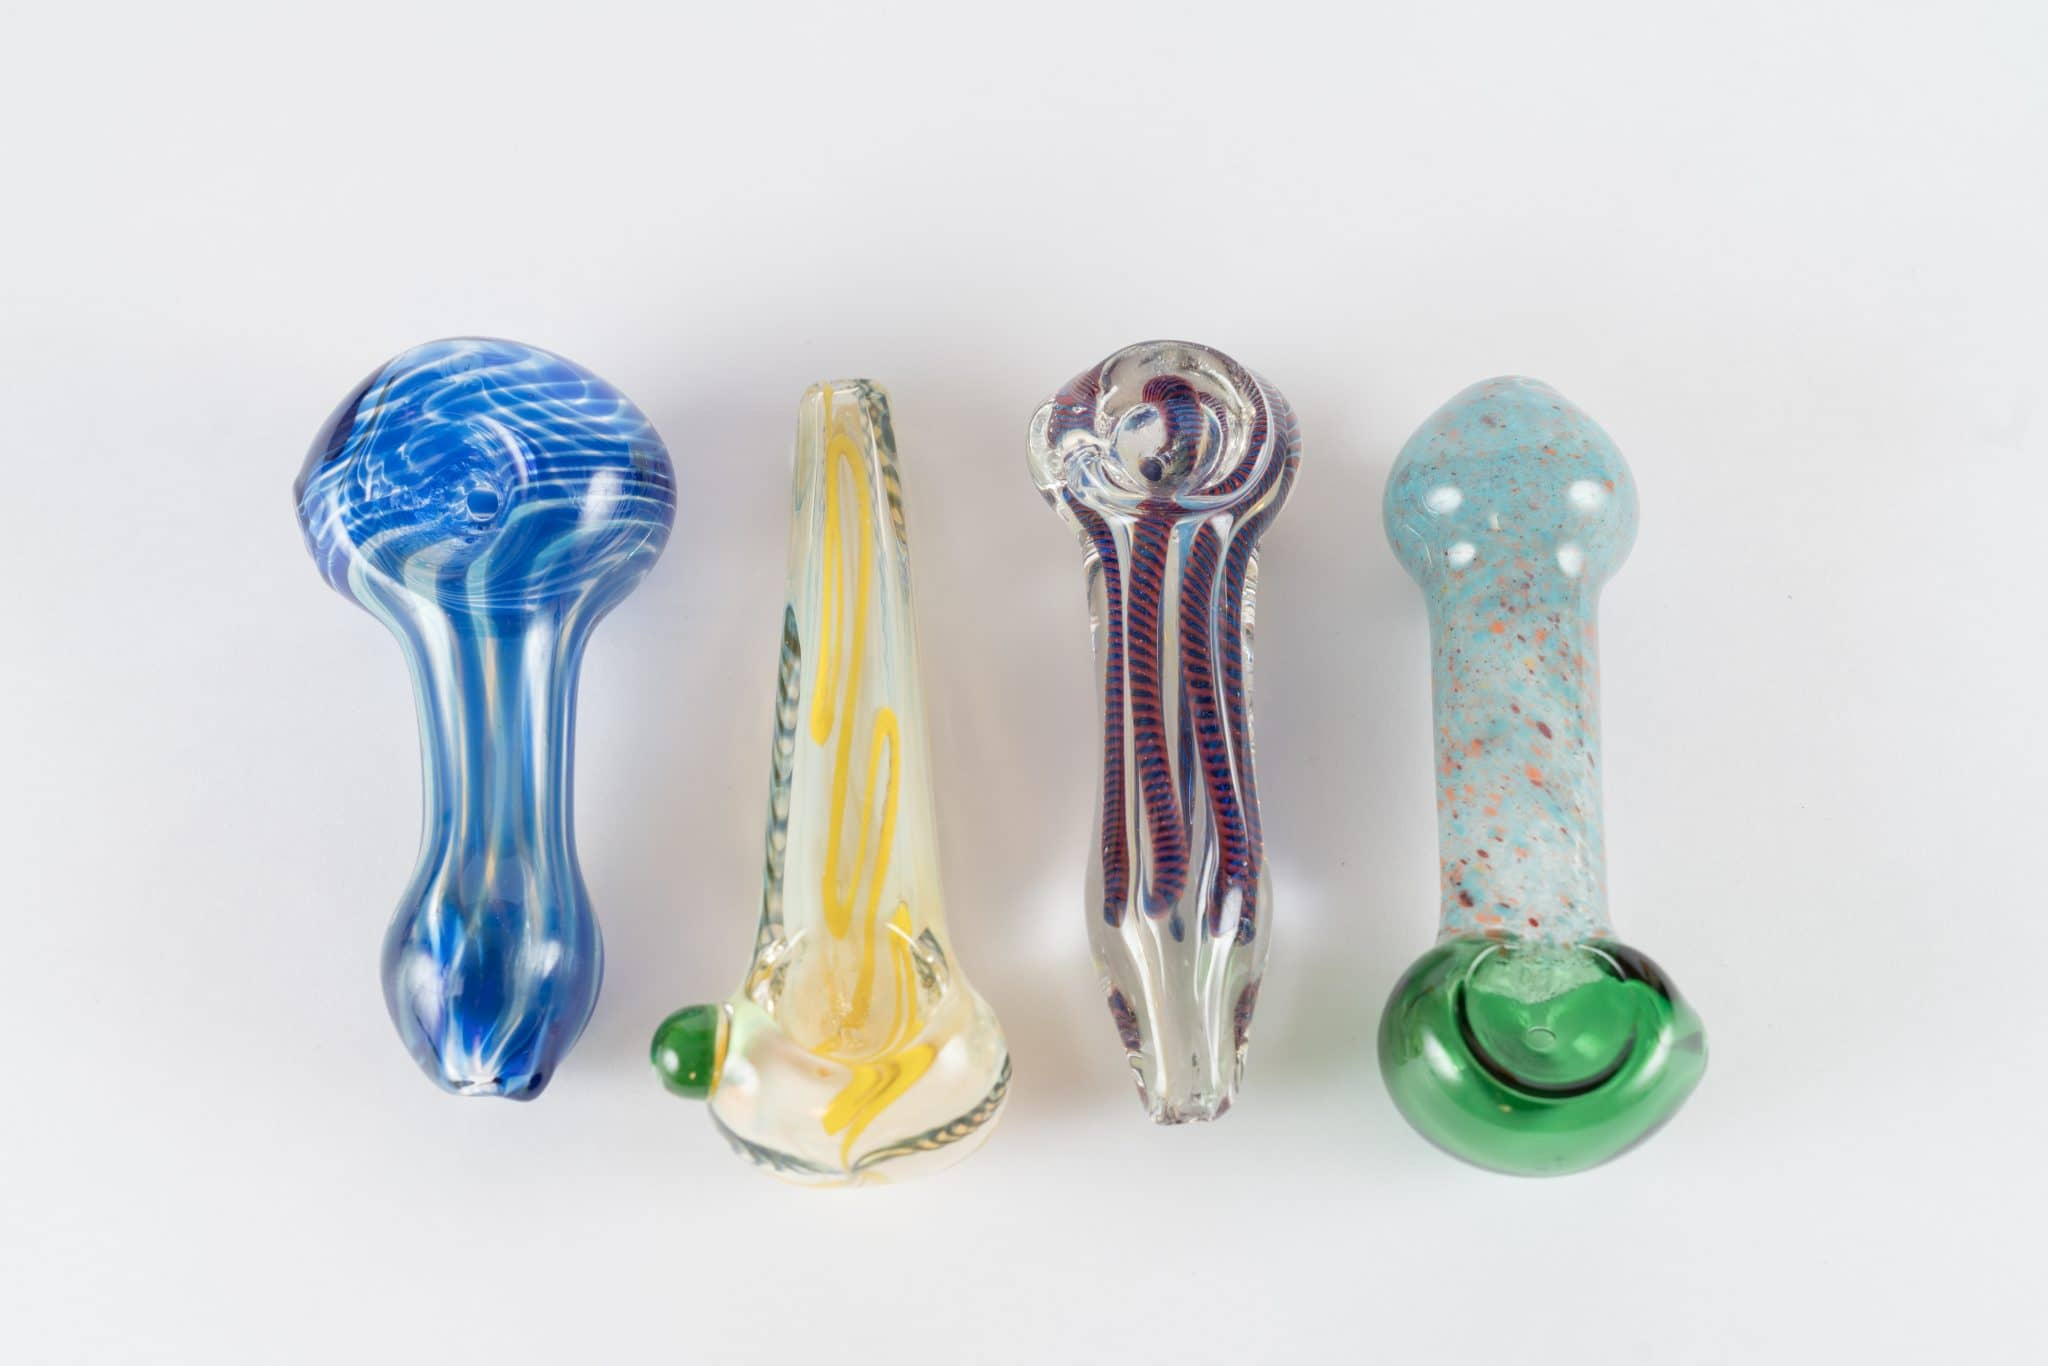 Three inch hand pipes for dispensary supplies from the Dispensary Source out of Los Angeles. For pricing, visit DispensarySource.com